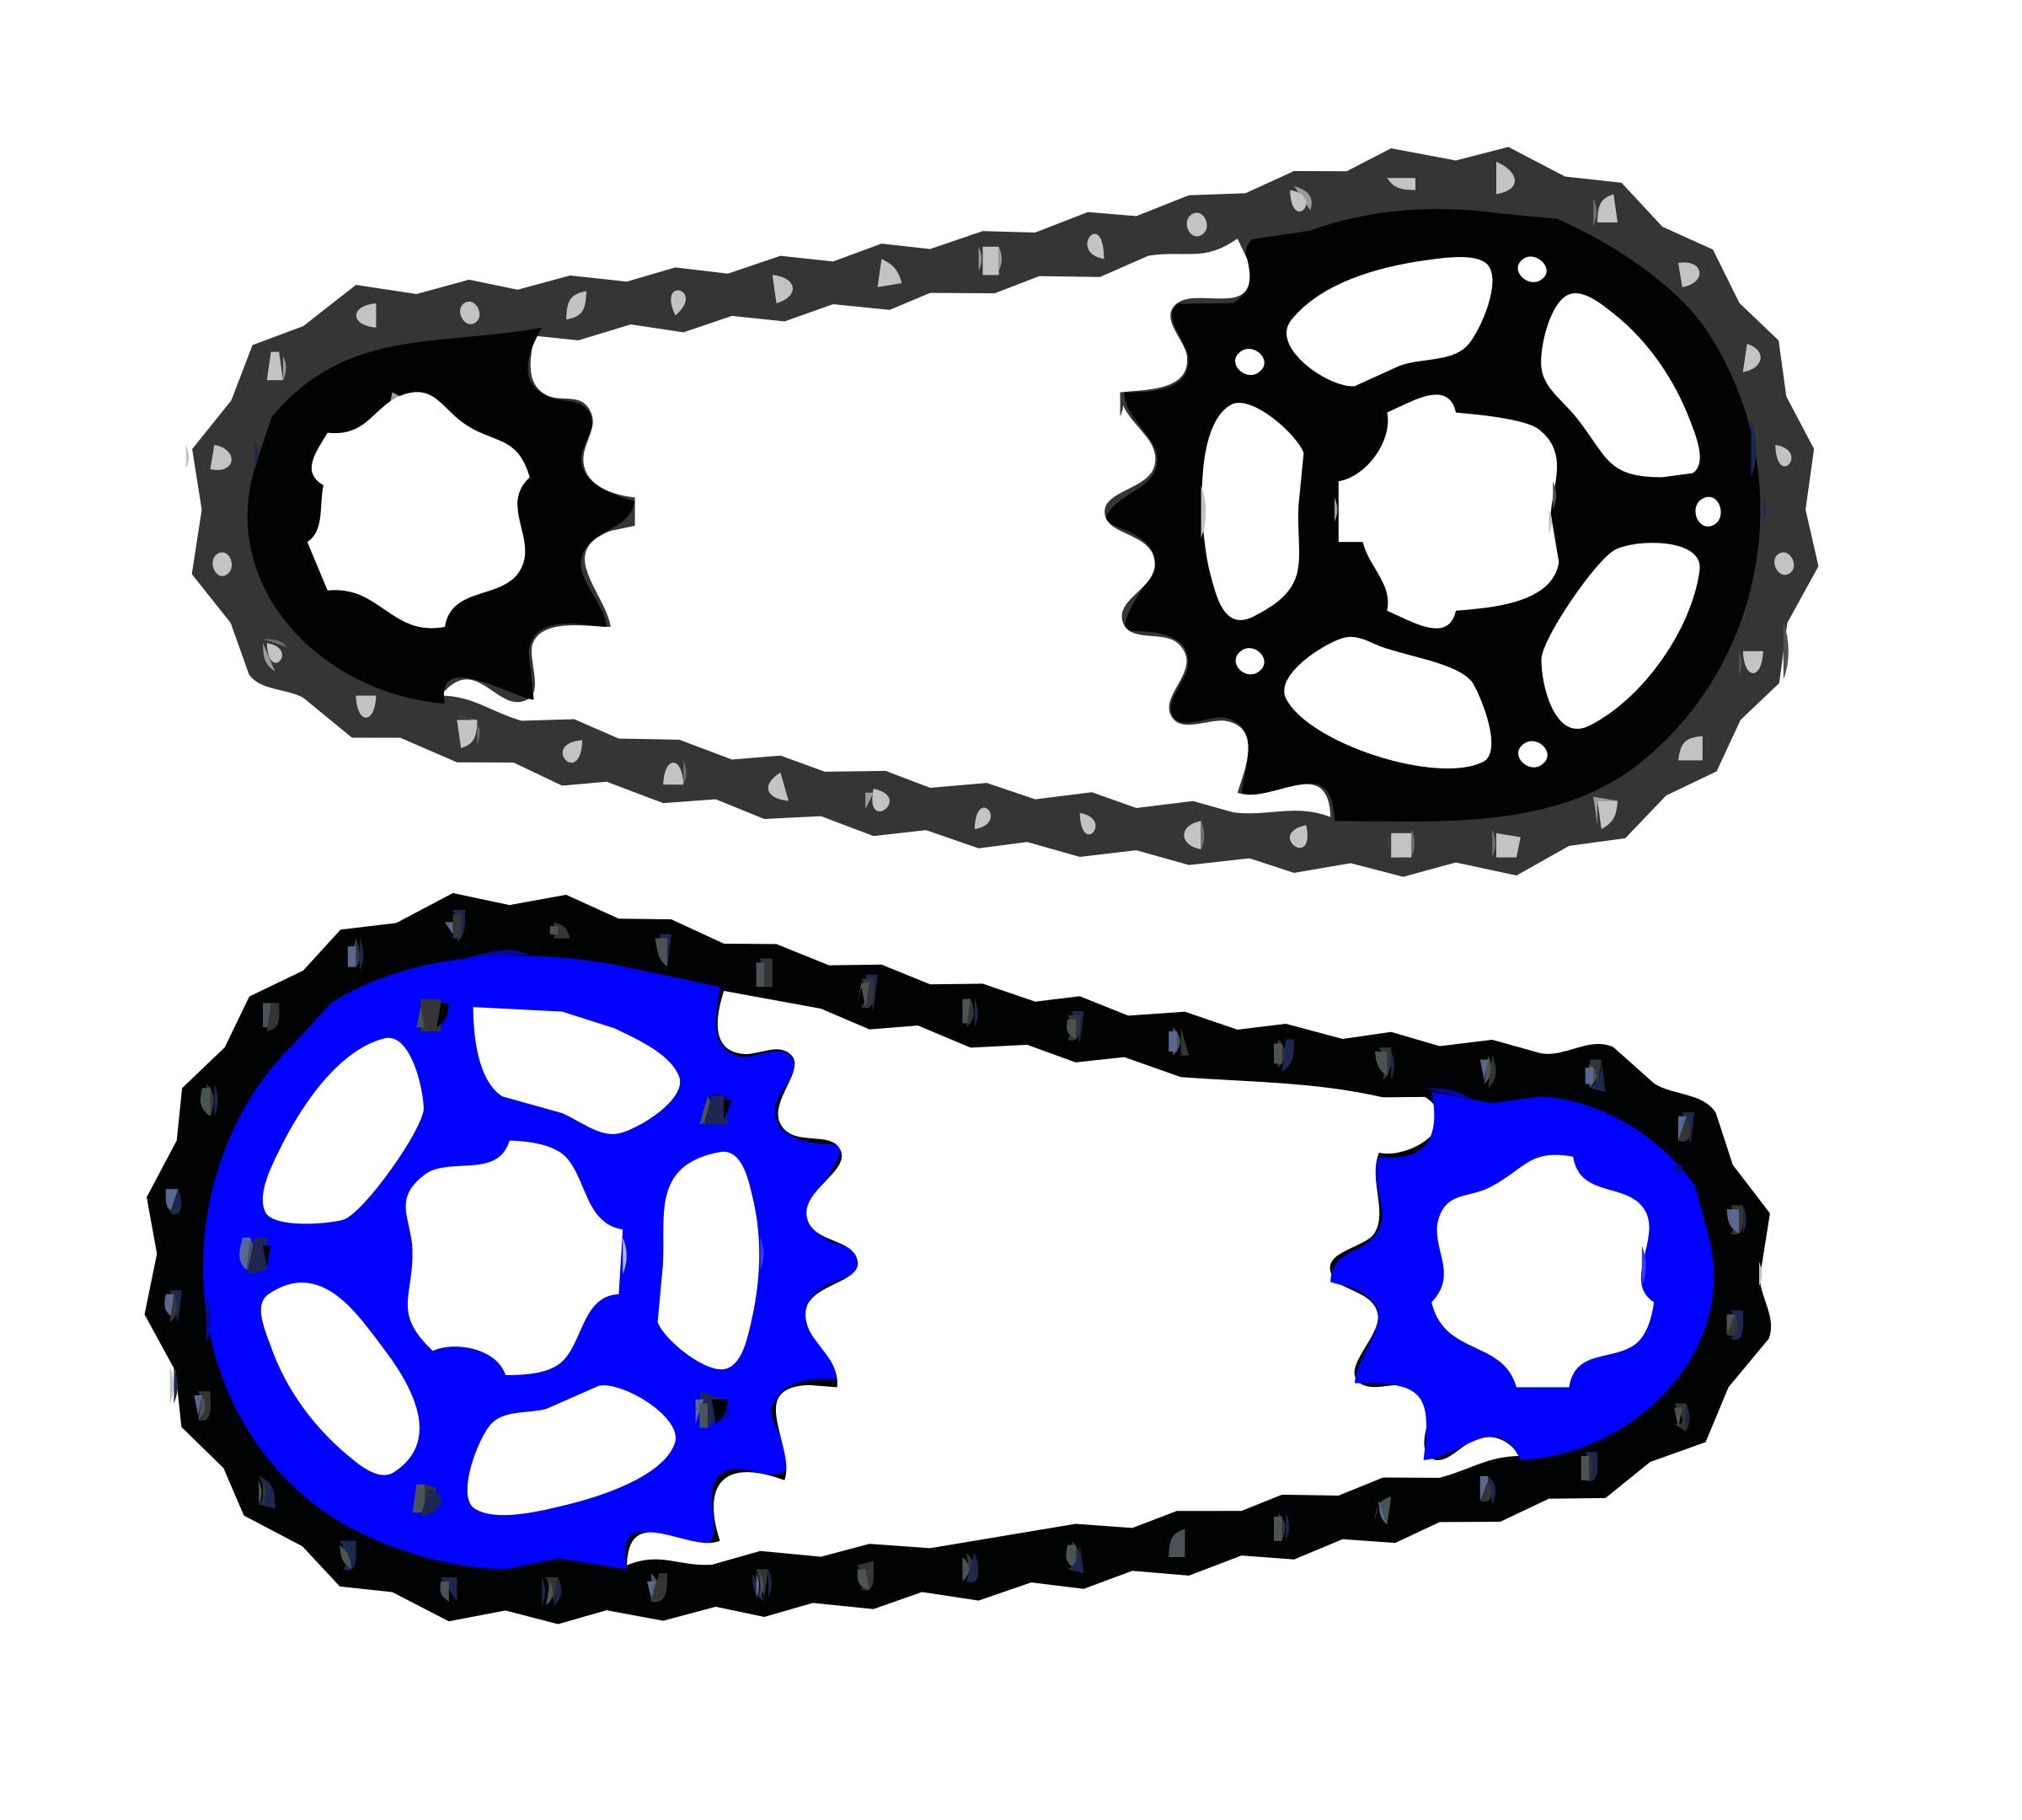 2400x2160 Bicycle Chain Vector Icons Png